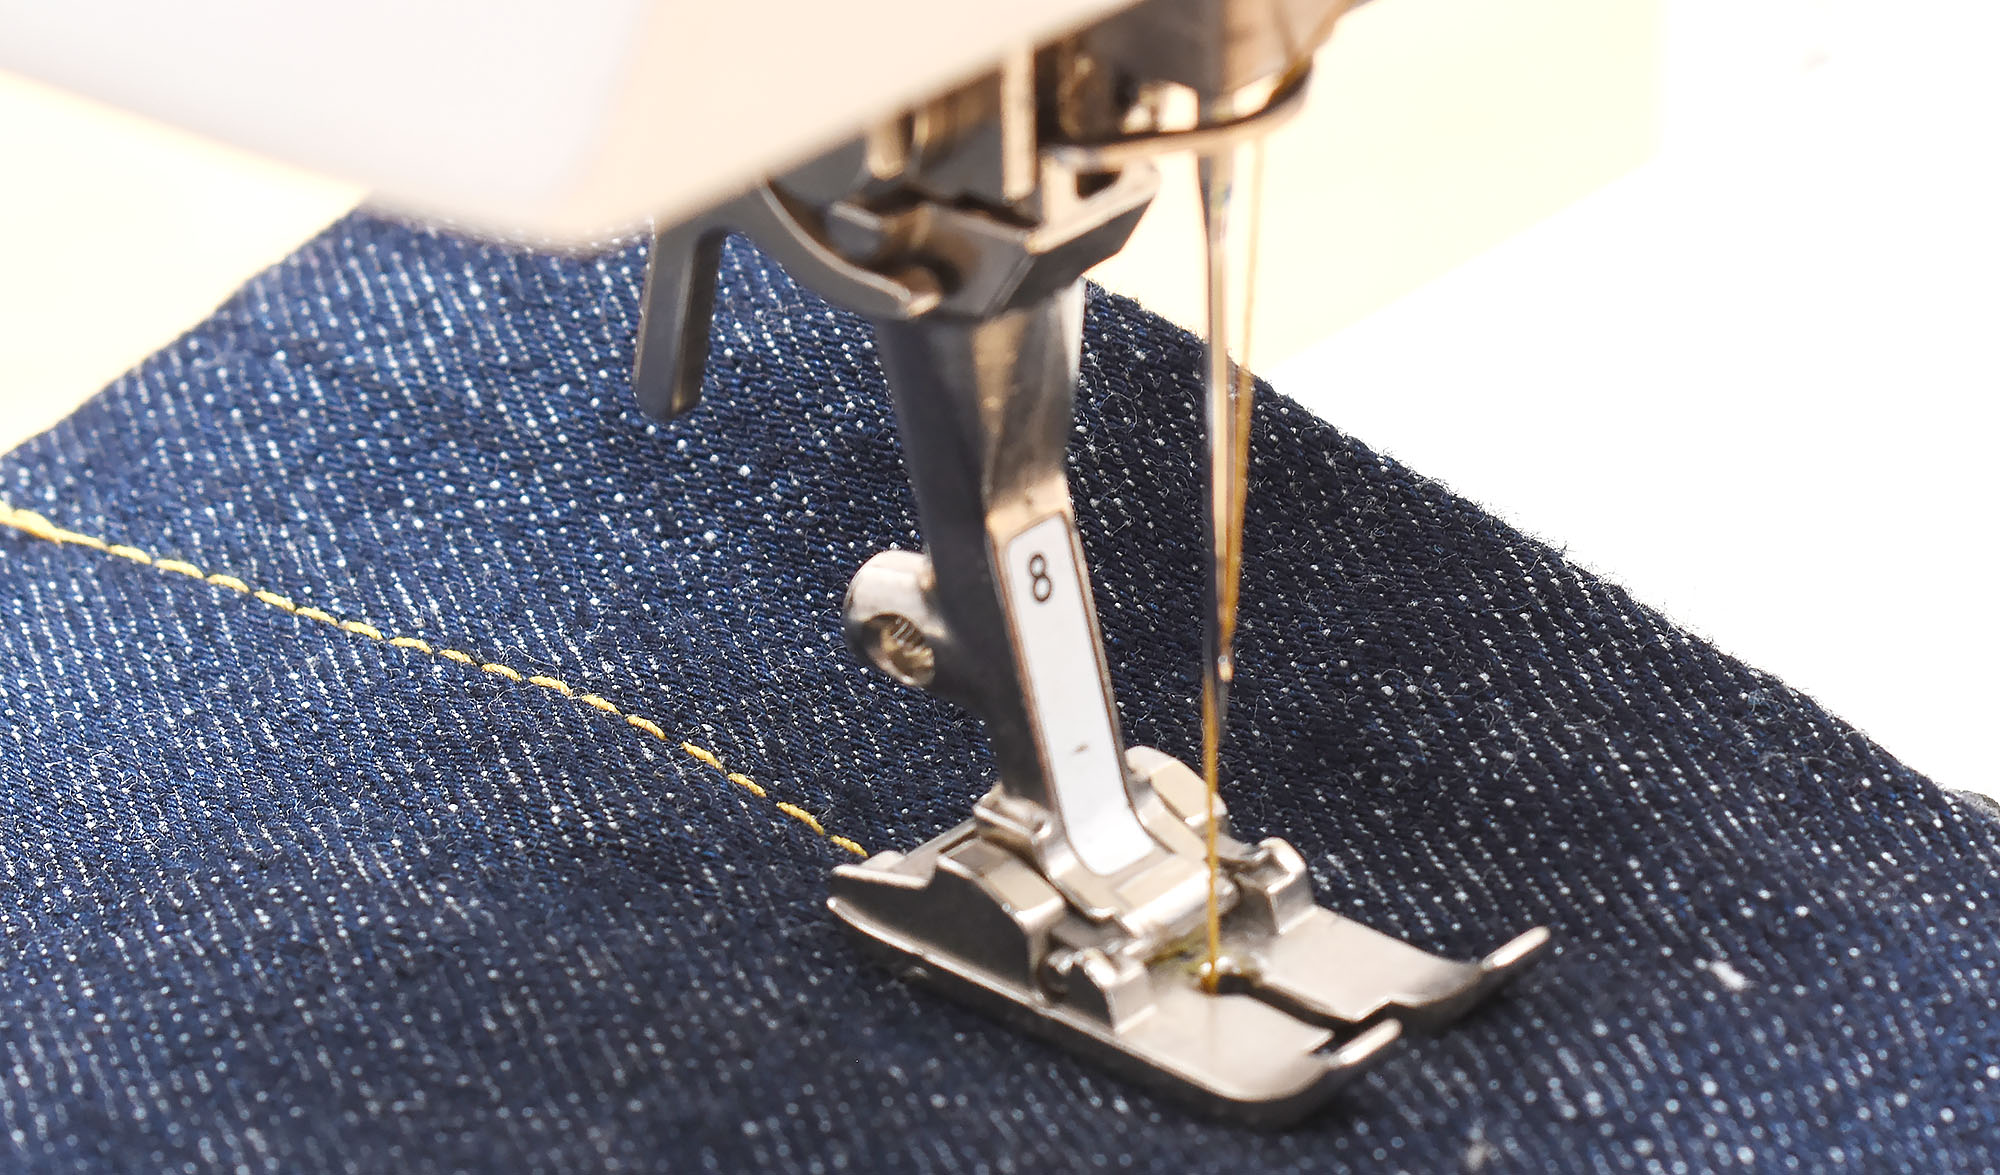 how-to-sew_04_topstitching